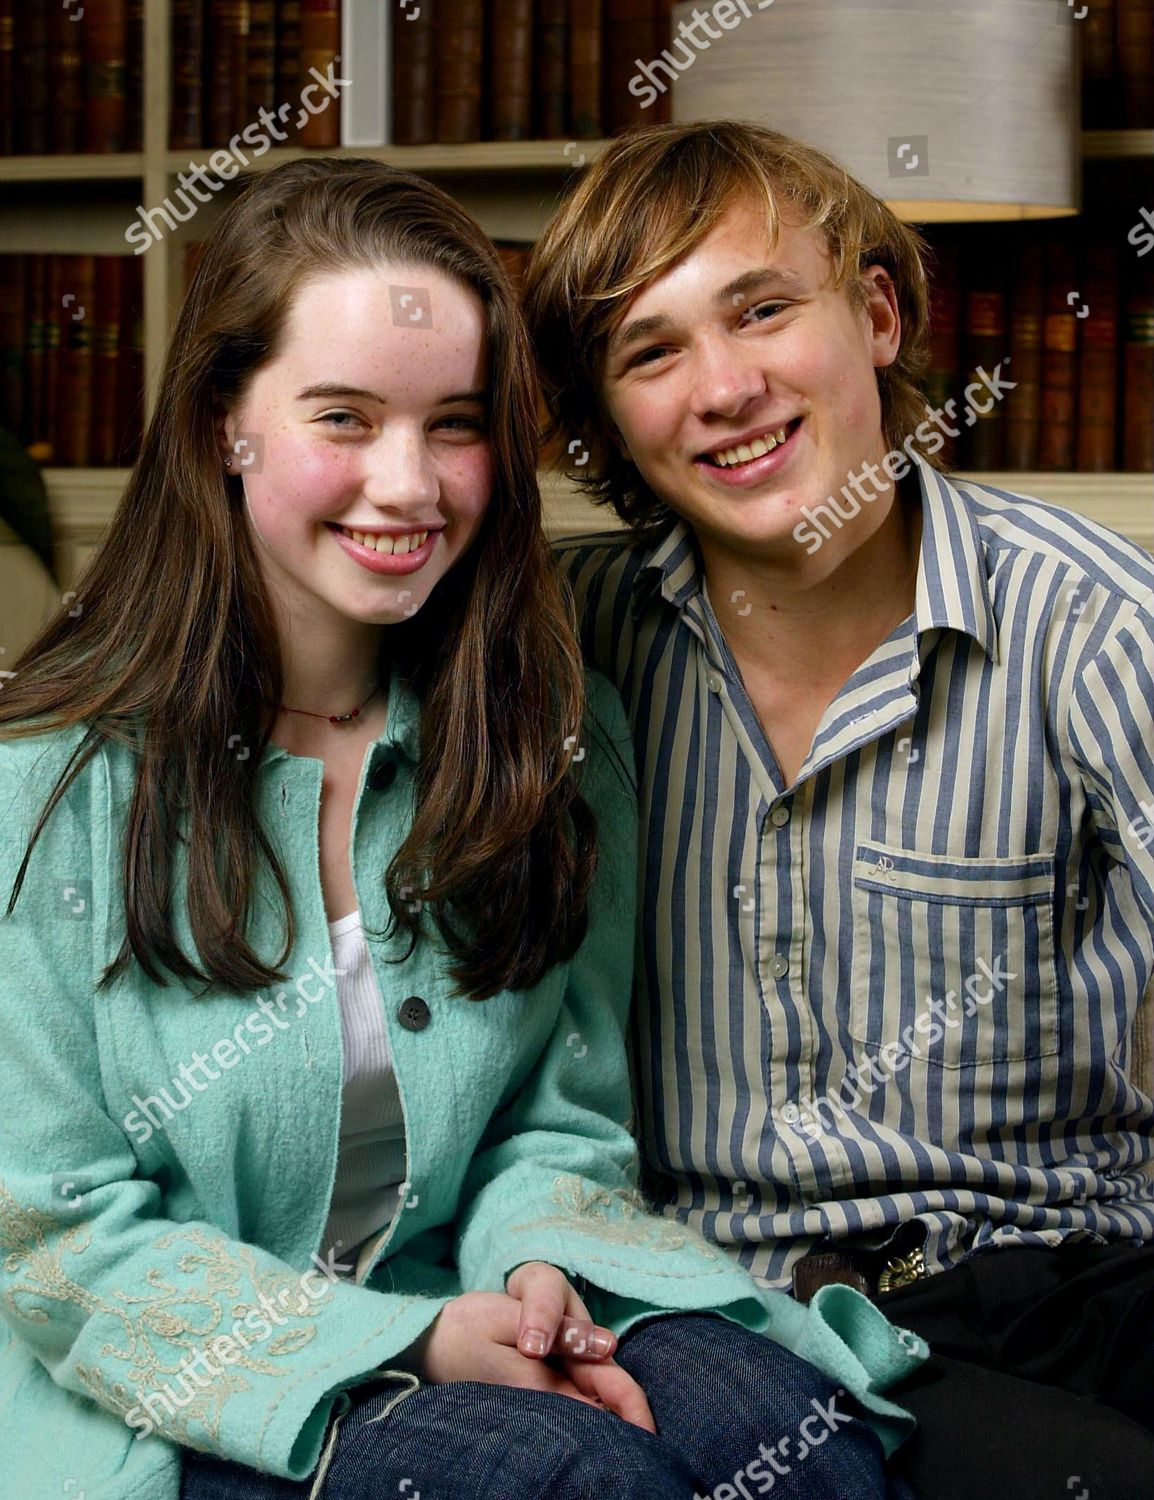 All About Anna 2005 Download anna popplewell william moseley editorial stock photo